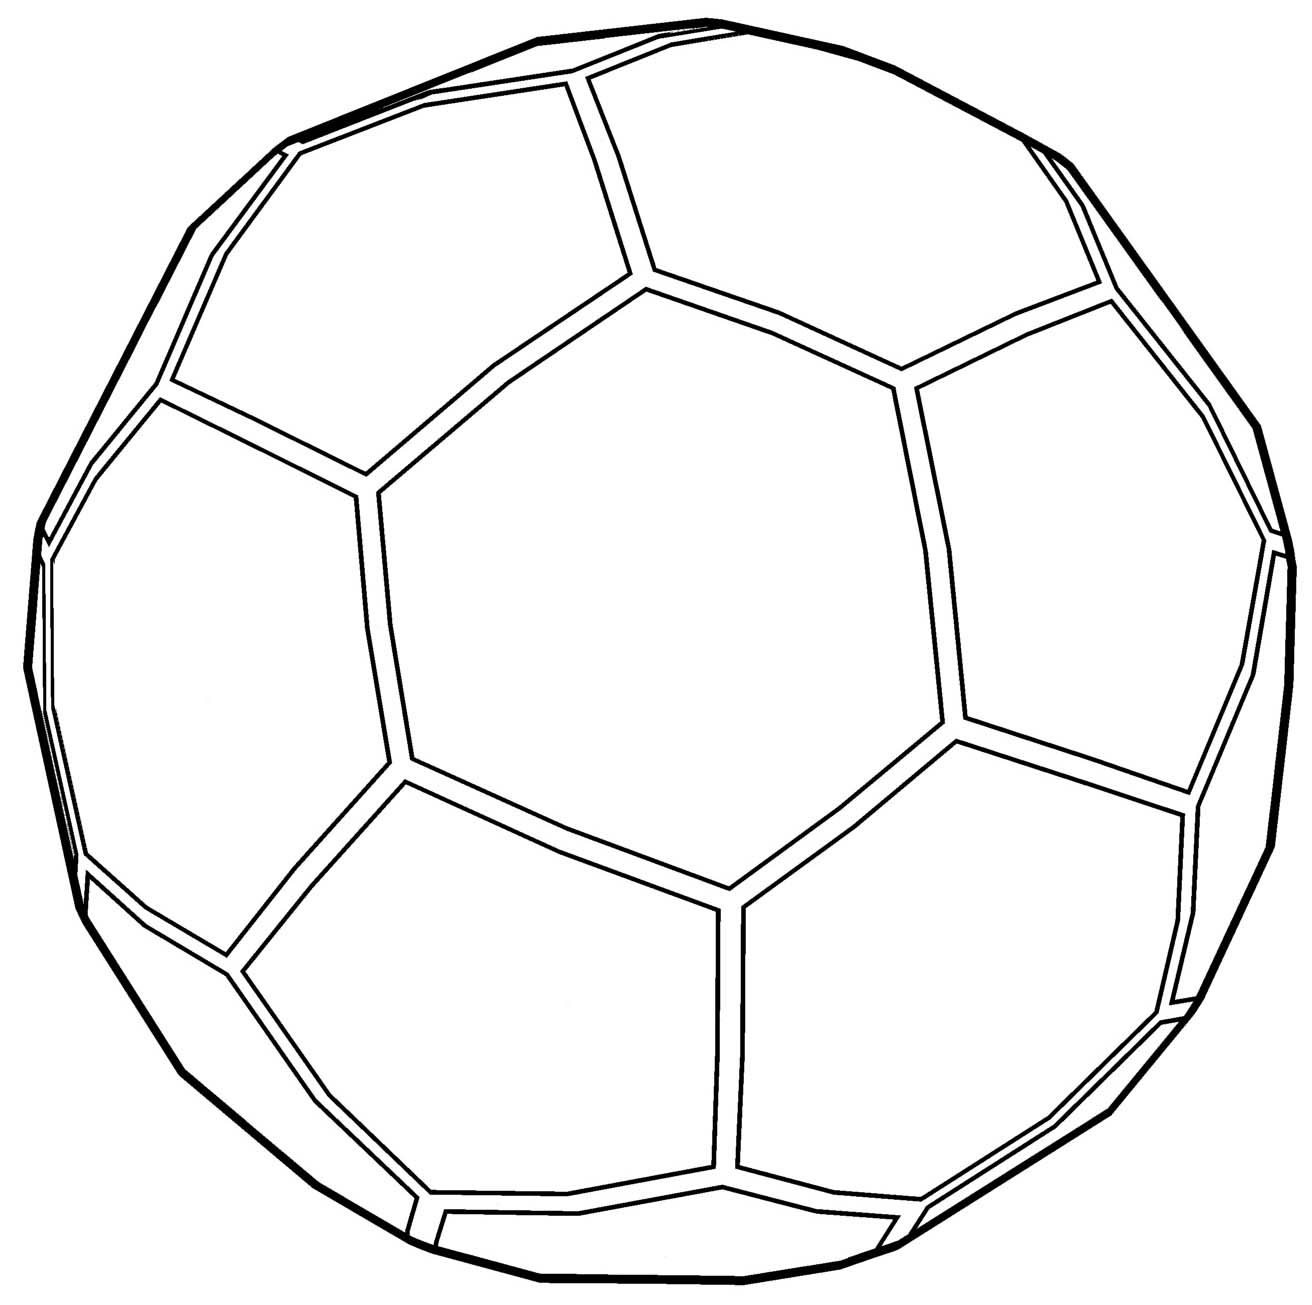 Soccer ball outline coloring page for Soccer balls coloring pages